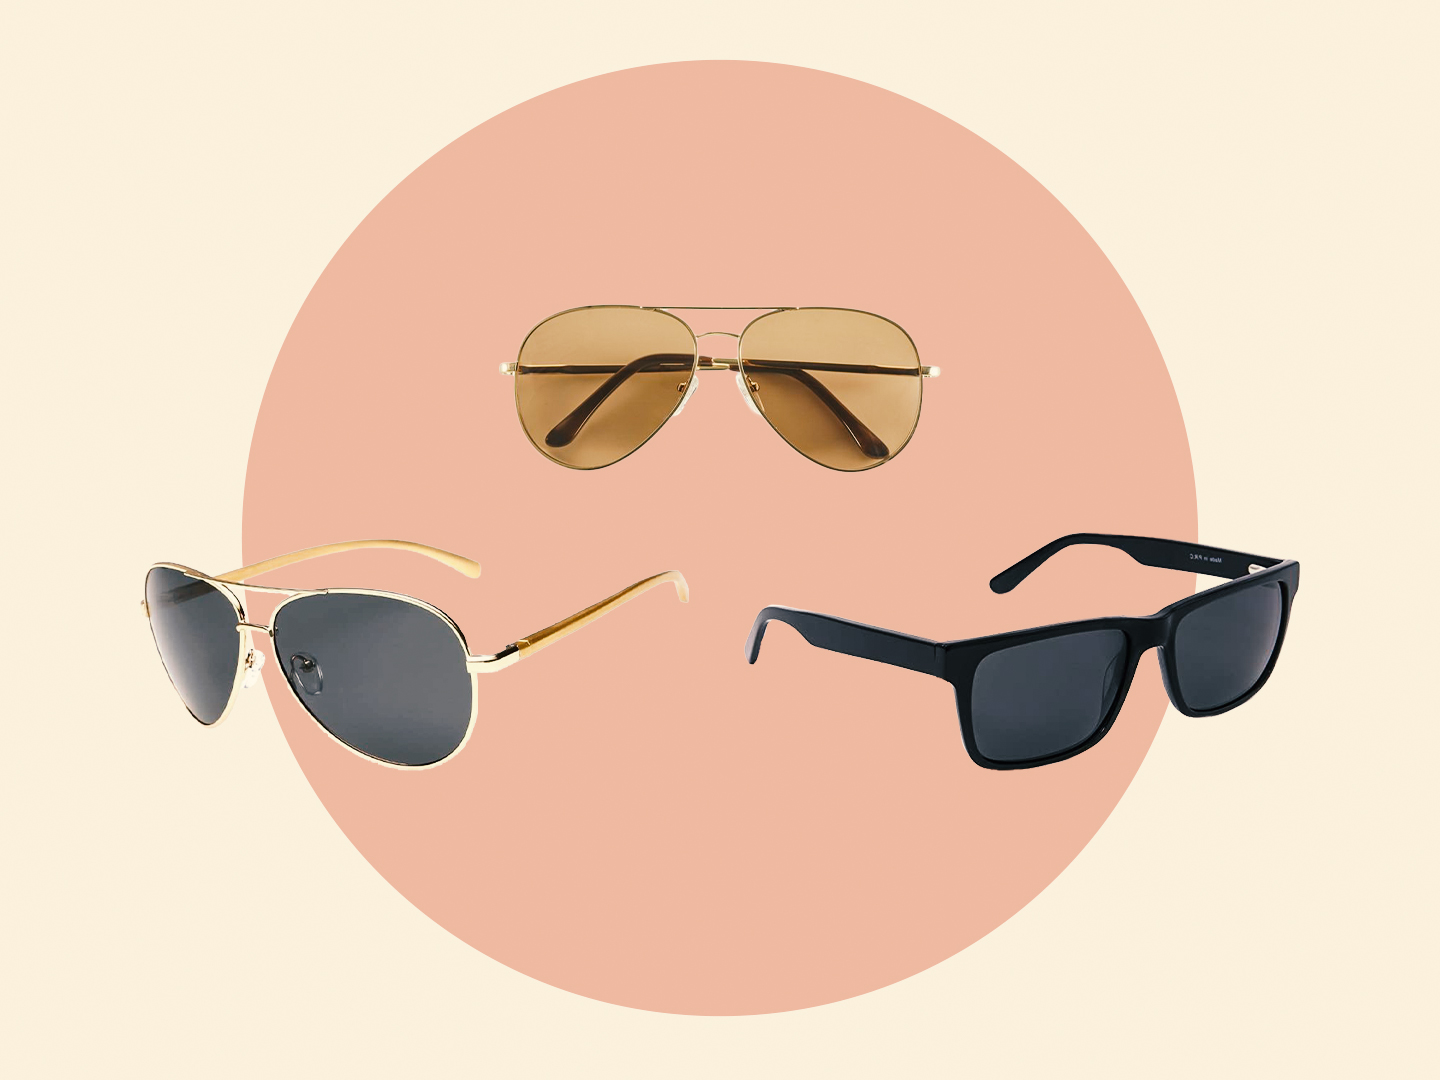 ray ban knockoffs that look like the